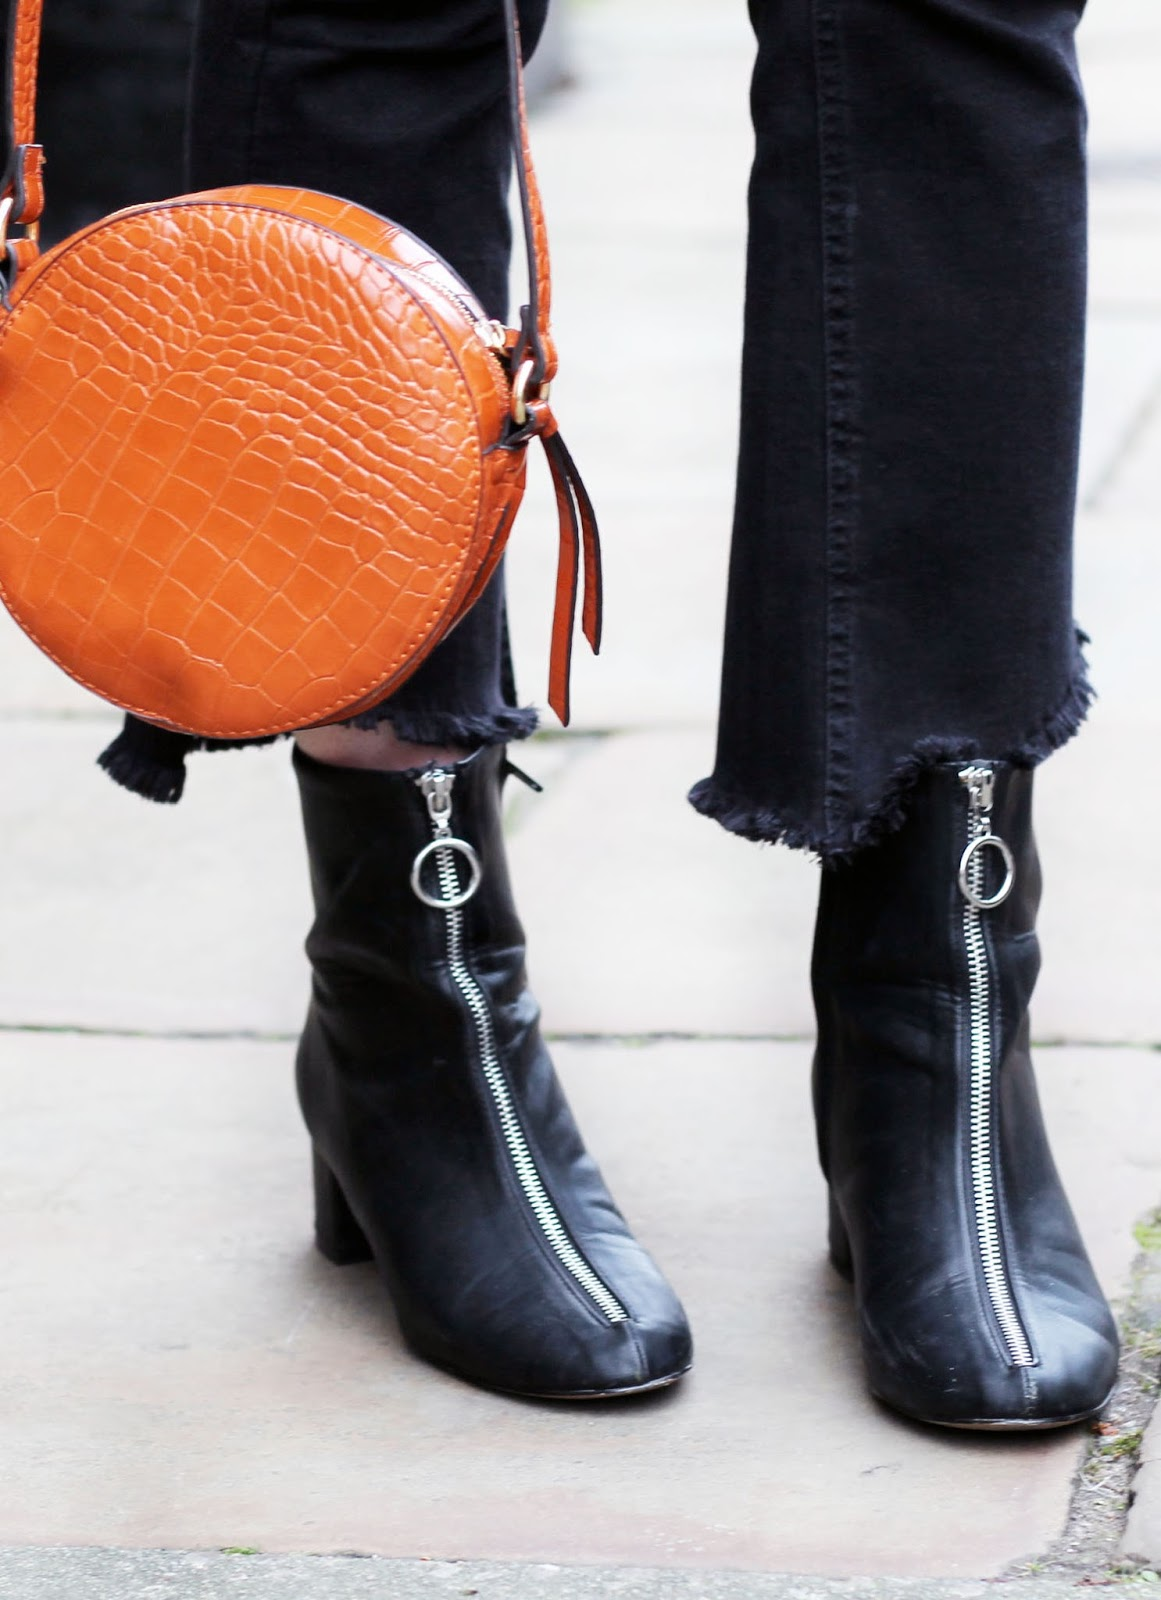 ASOS black zip up boots with ring pull detail, black crop kick flare jeans and burned orange mock croc bag